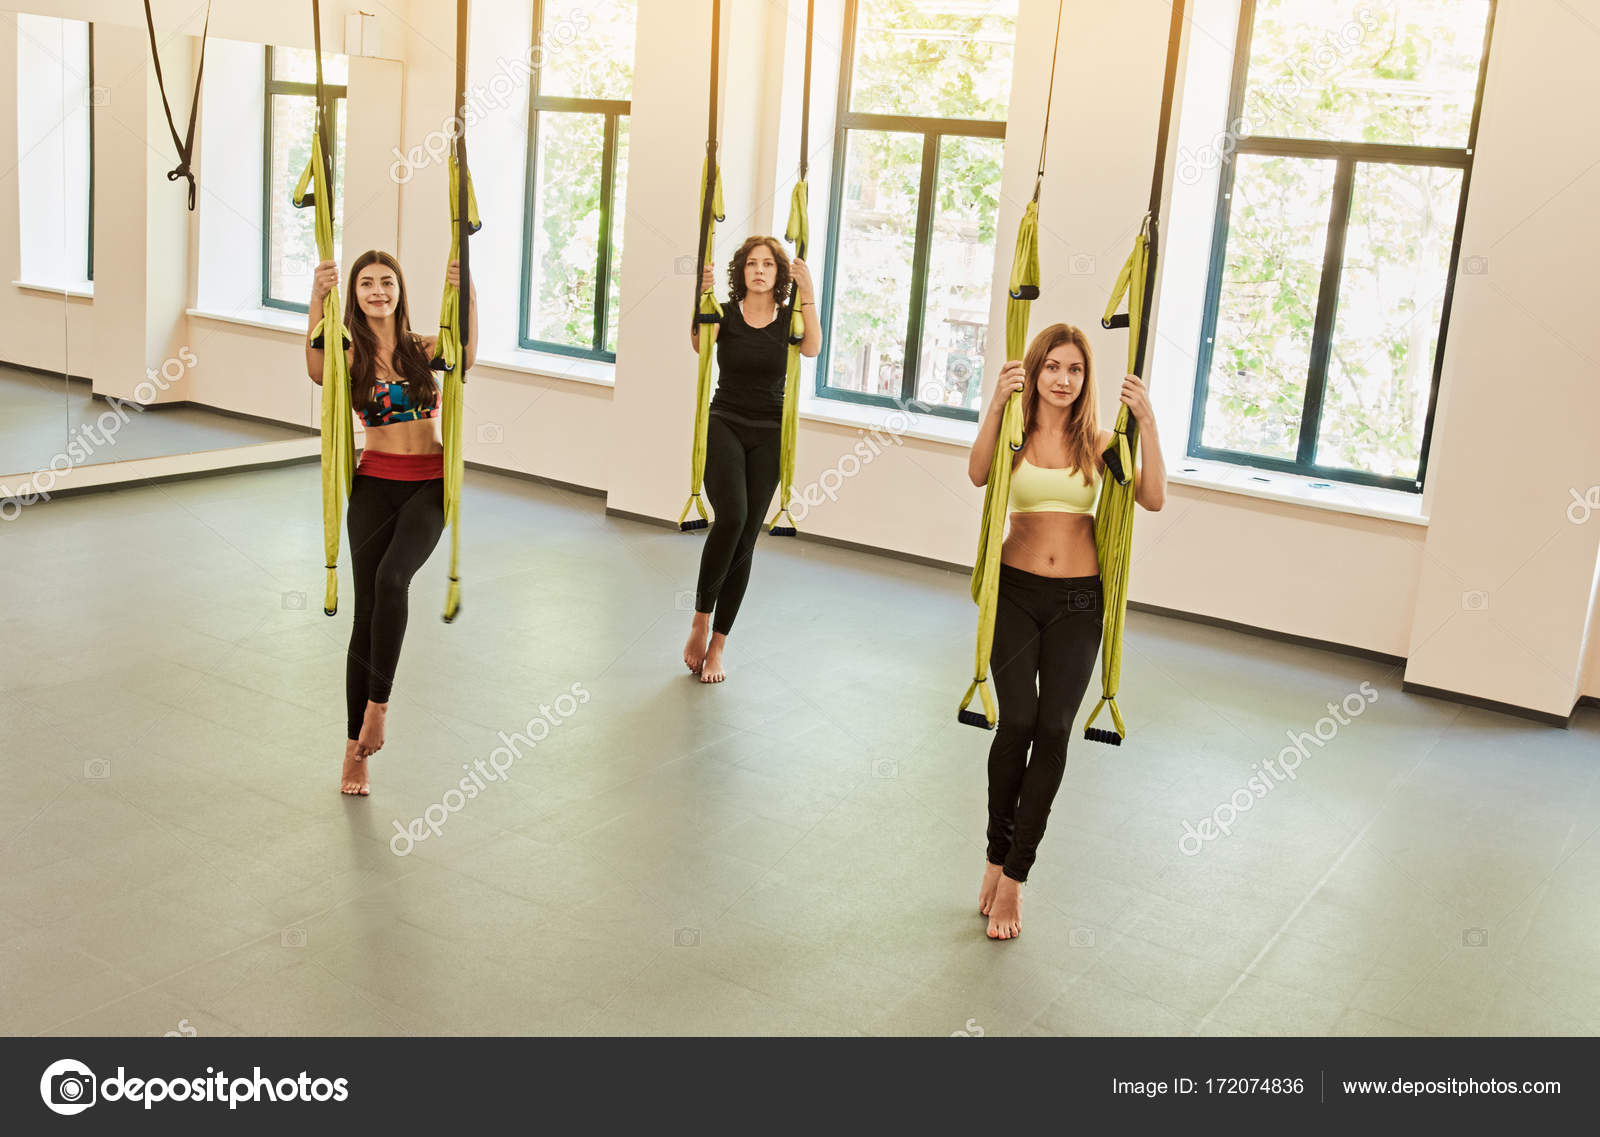 antigravity yoga hammocks  training is soon  u2014 stock photo antigravity yoga hammocks  training is soon  u2014 stock photo      rh   depositphotos